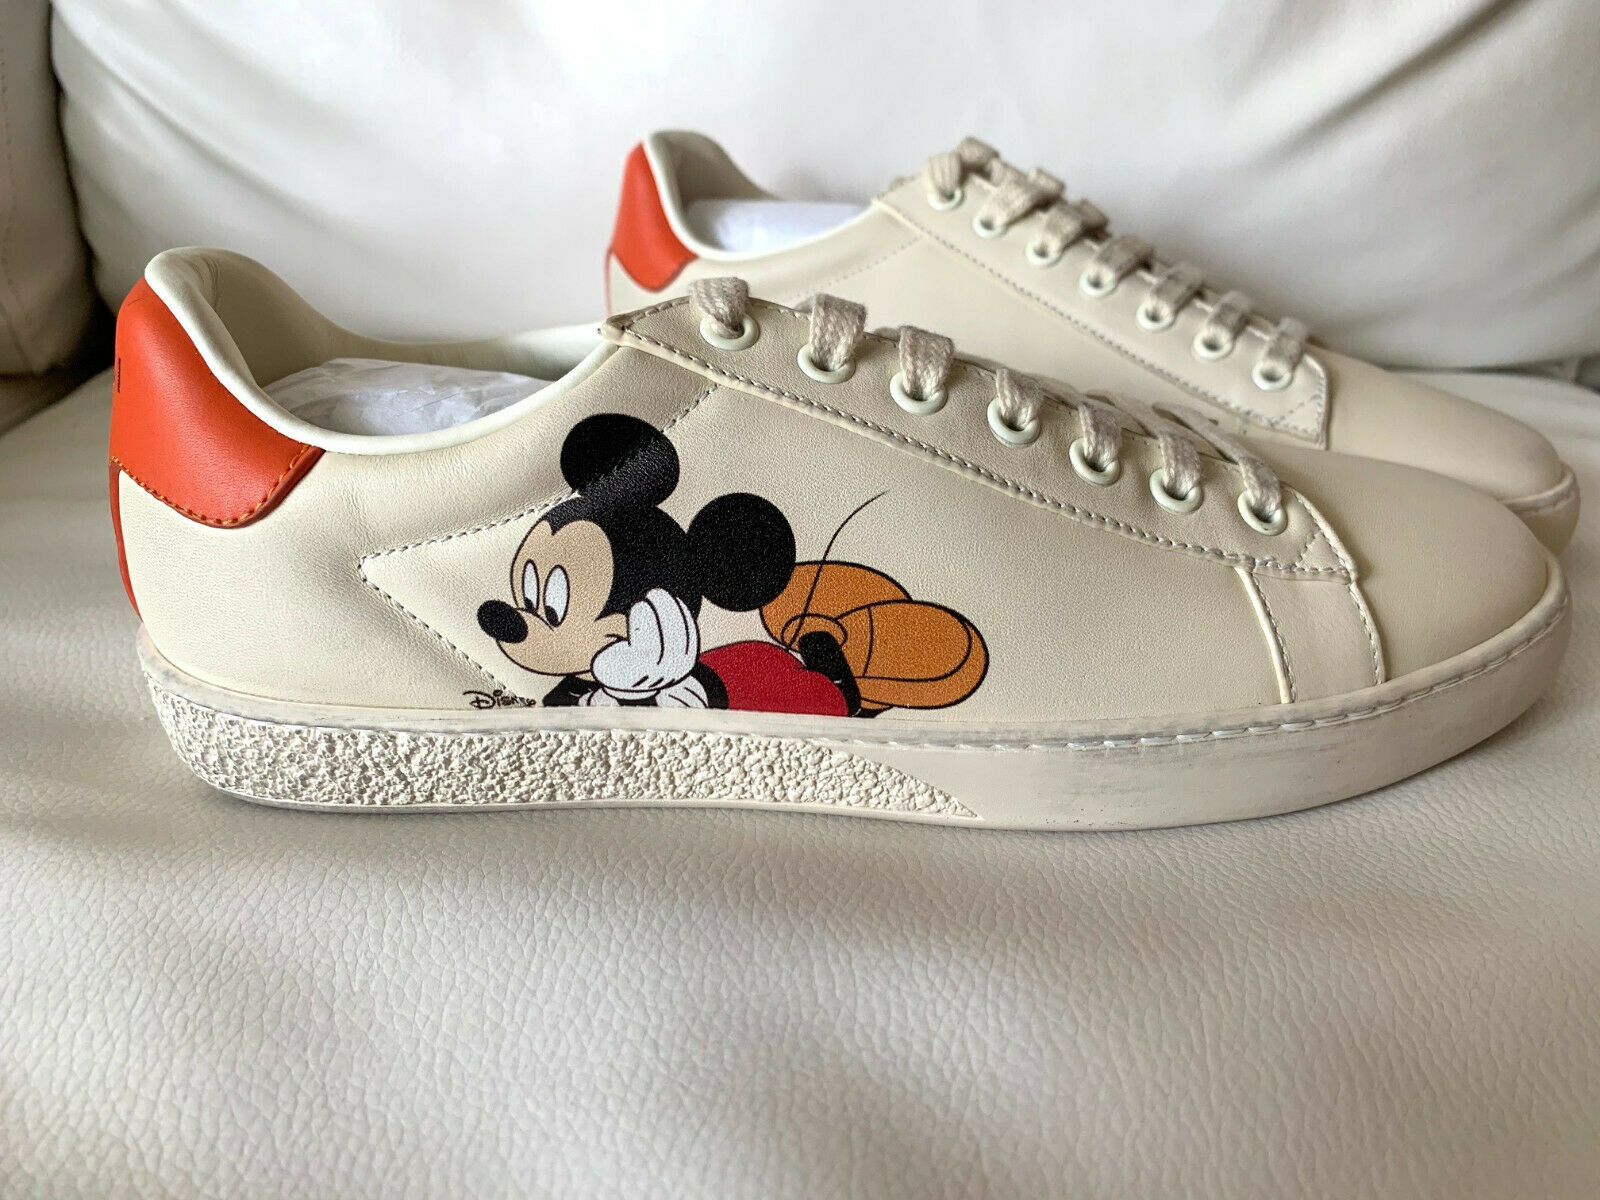 Gucci Ace x Disney Ivory